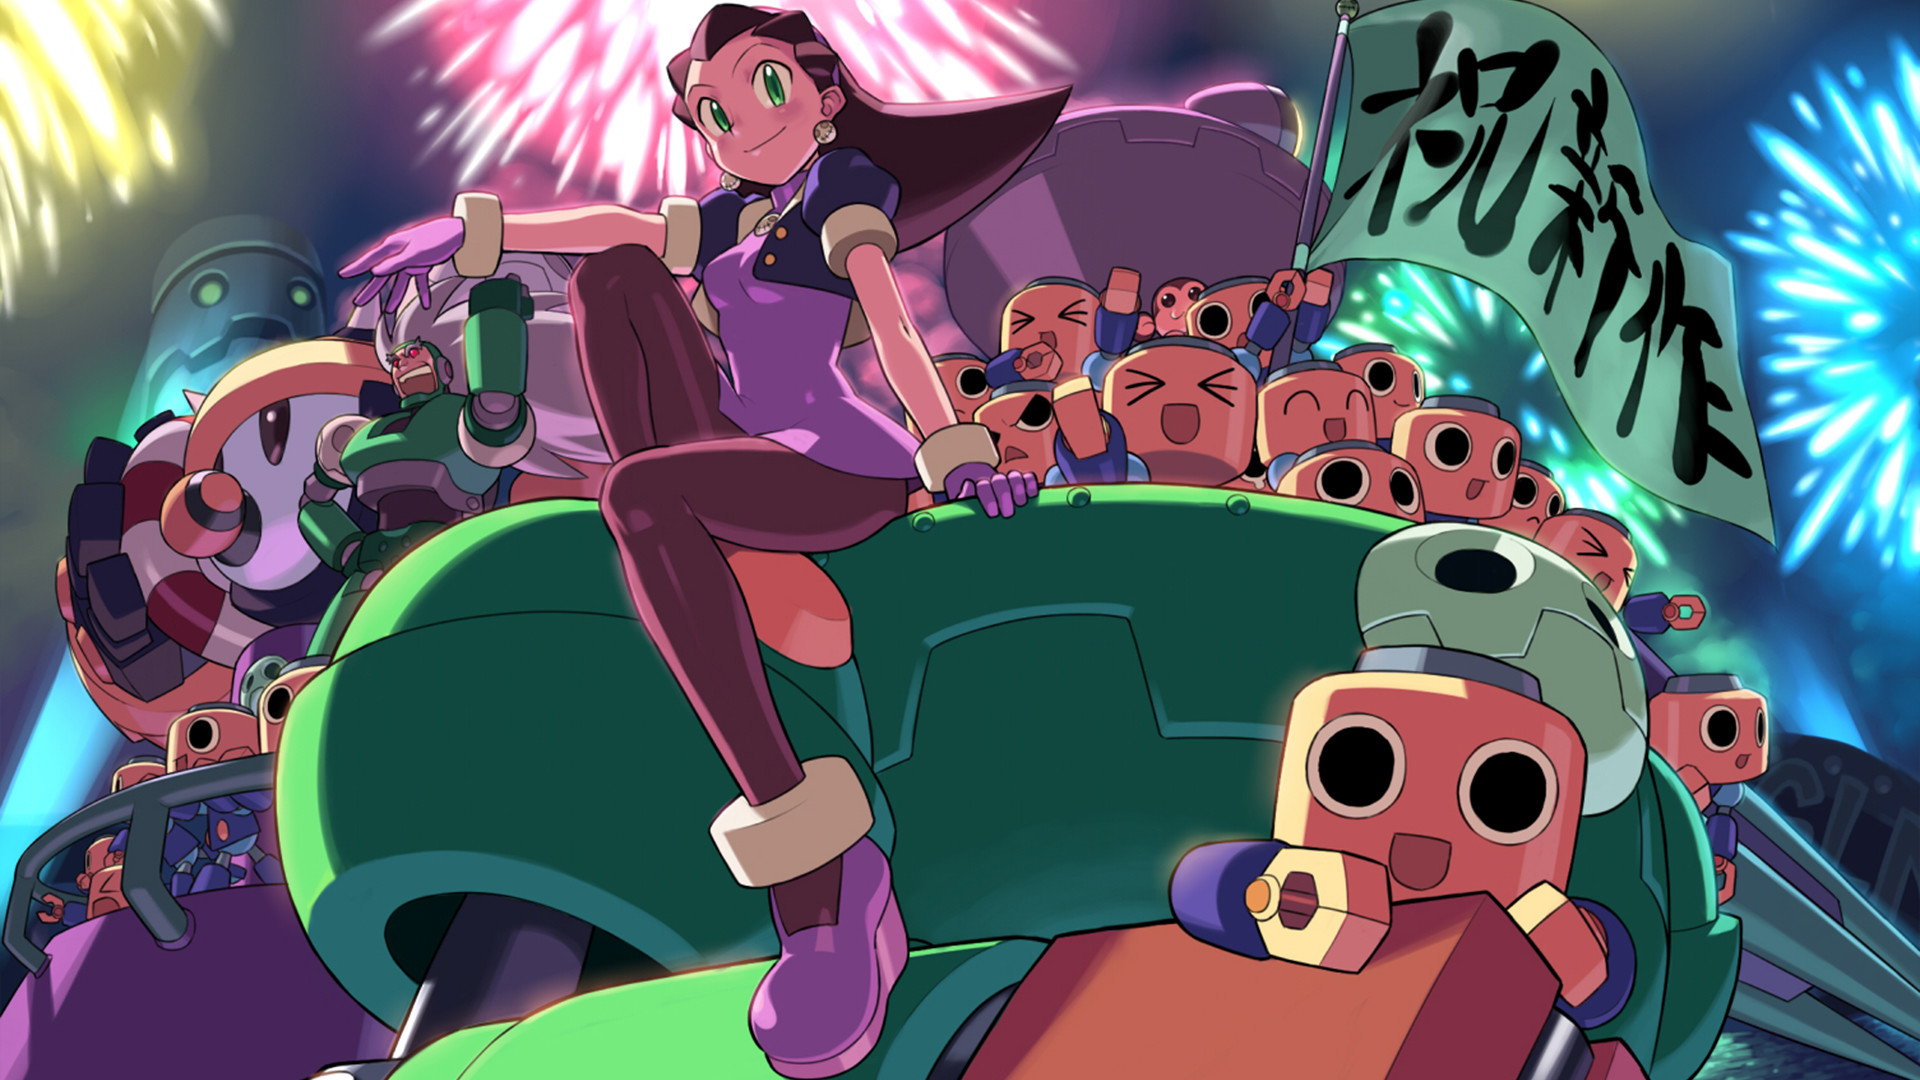 One of the less well-known characters from the Mega Man games. She's a  robotics genius.